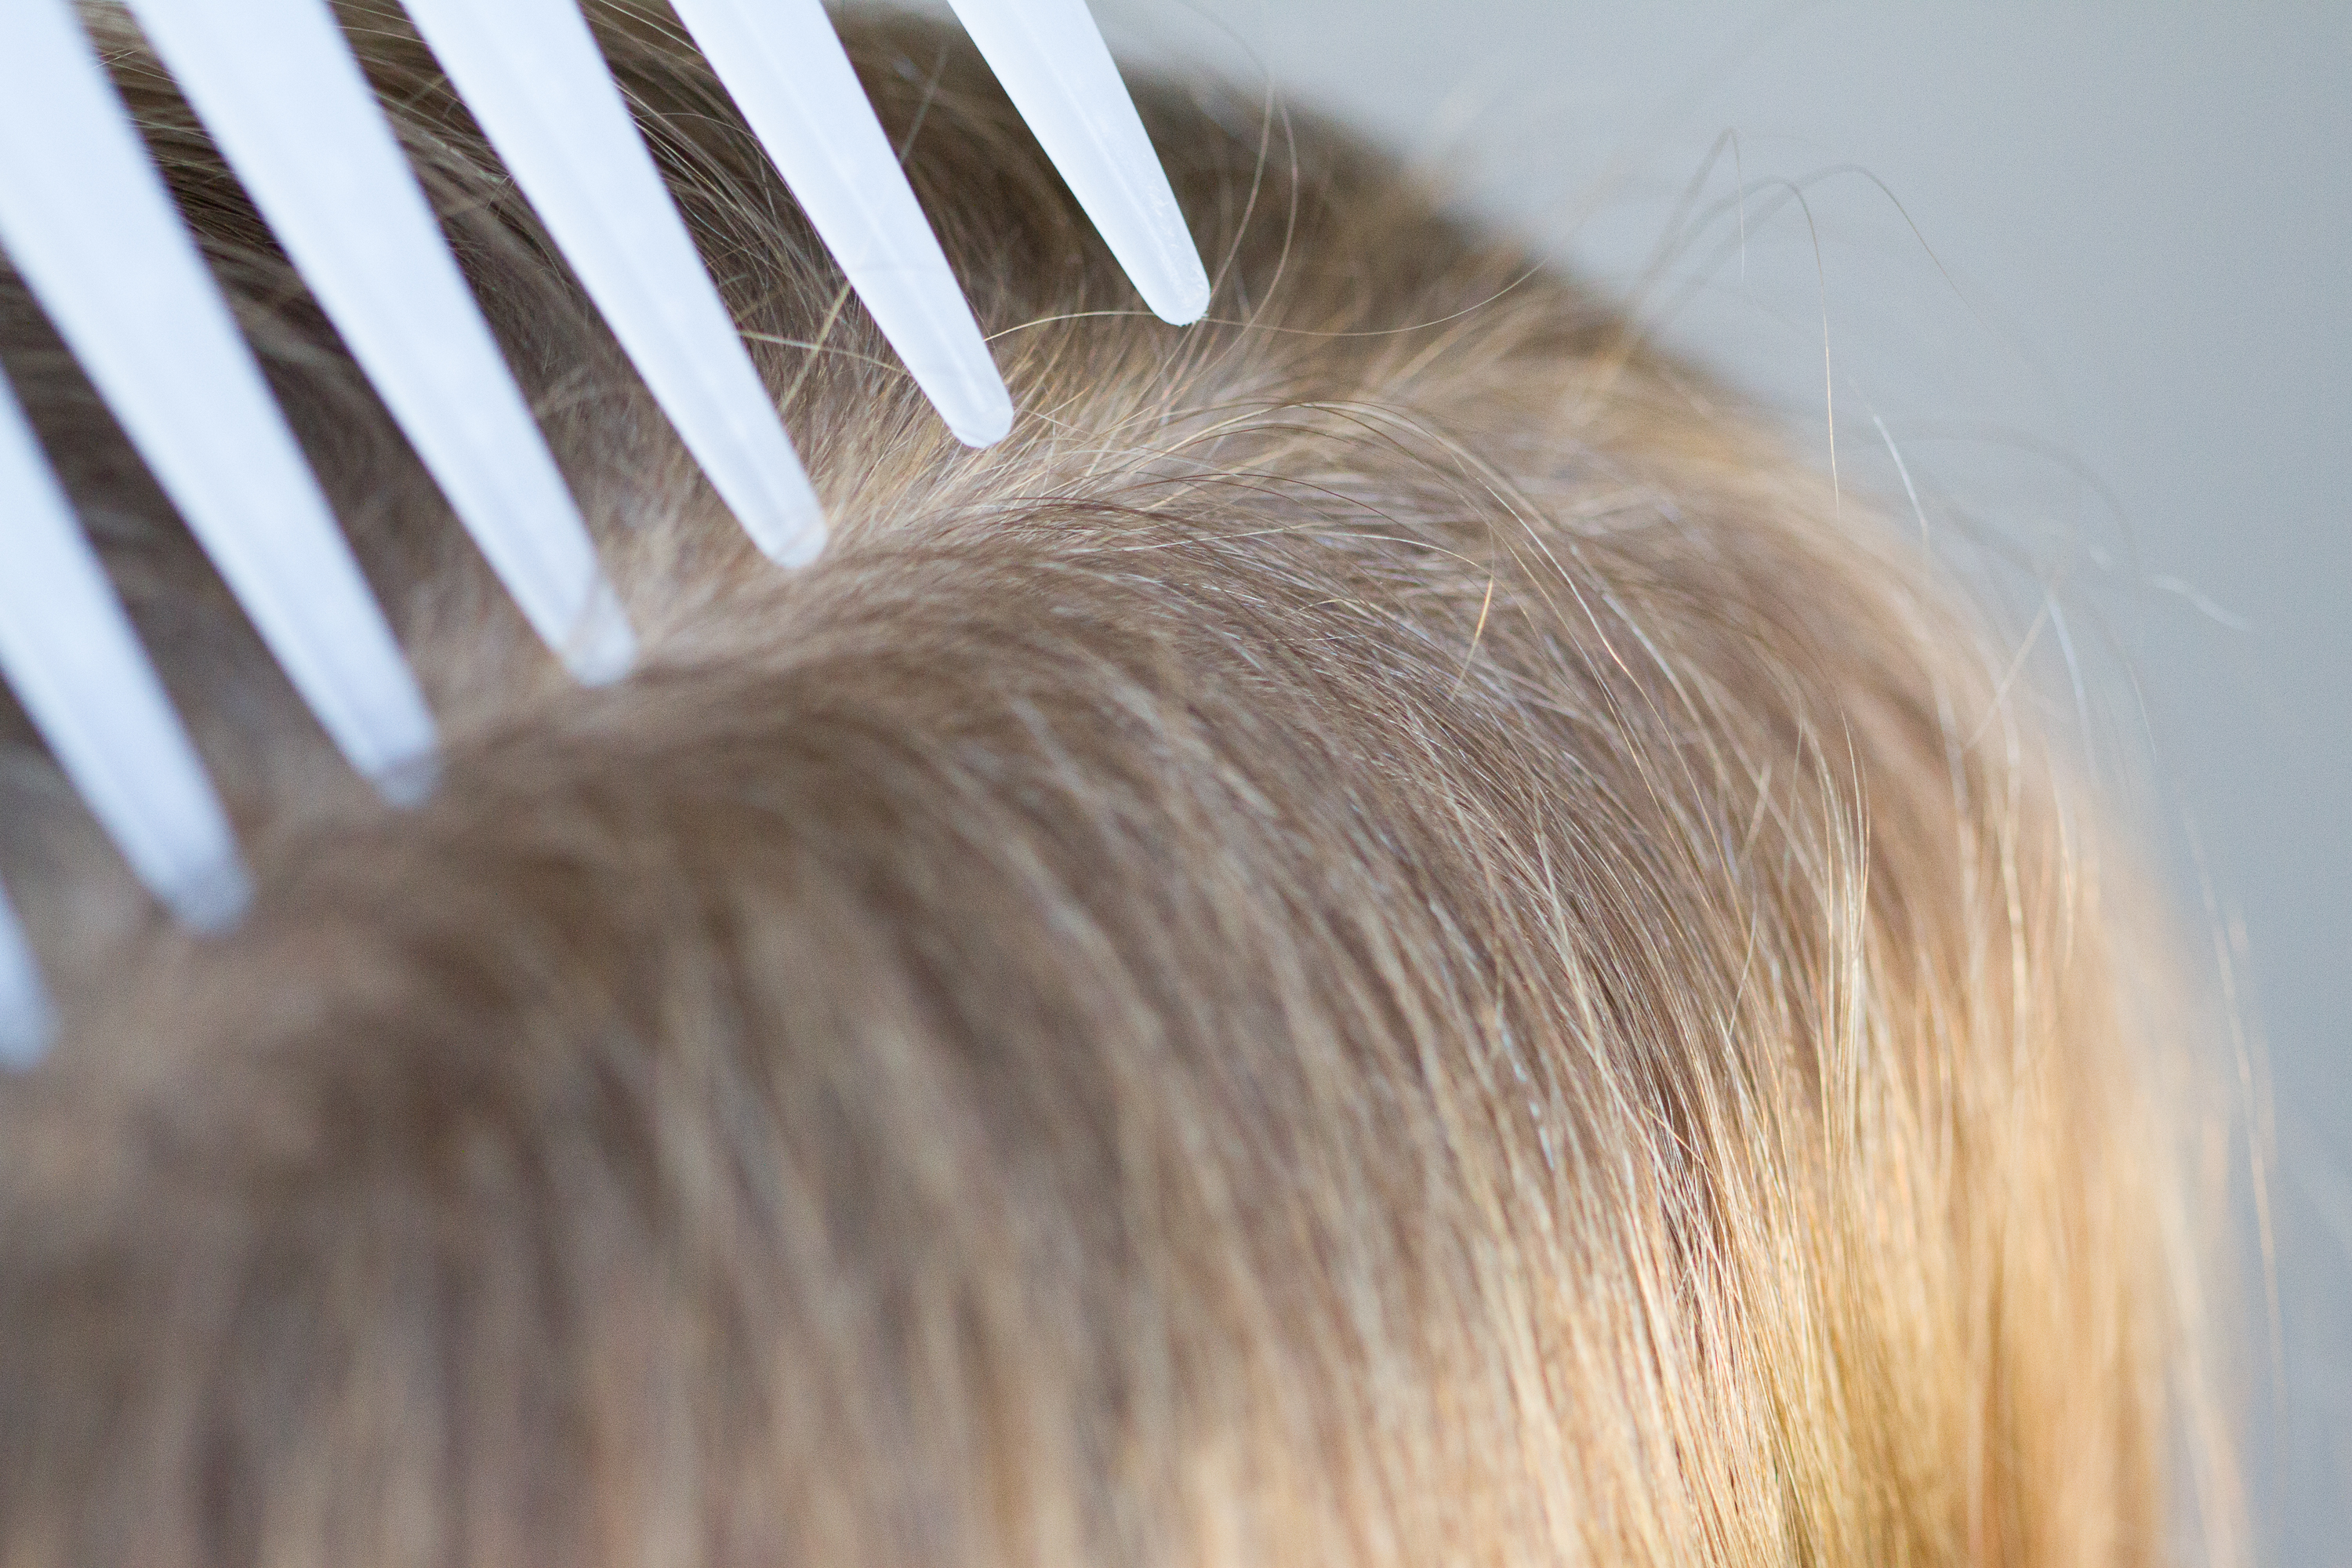 How To Clean Hair Brushes Lice Healthfully